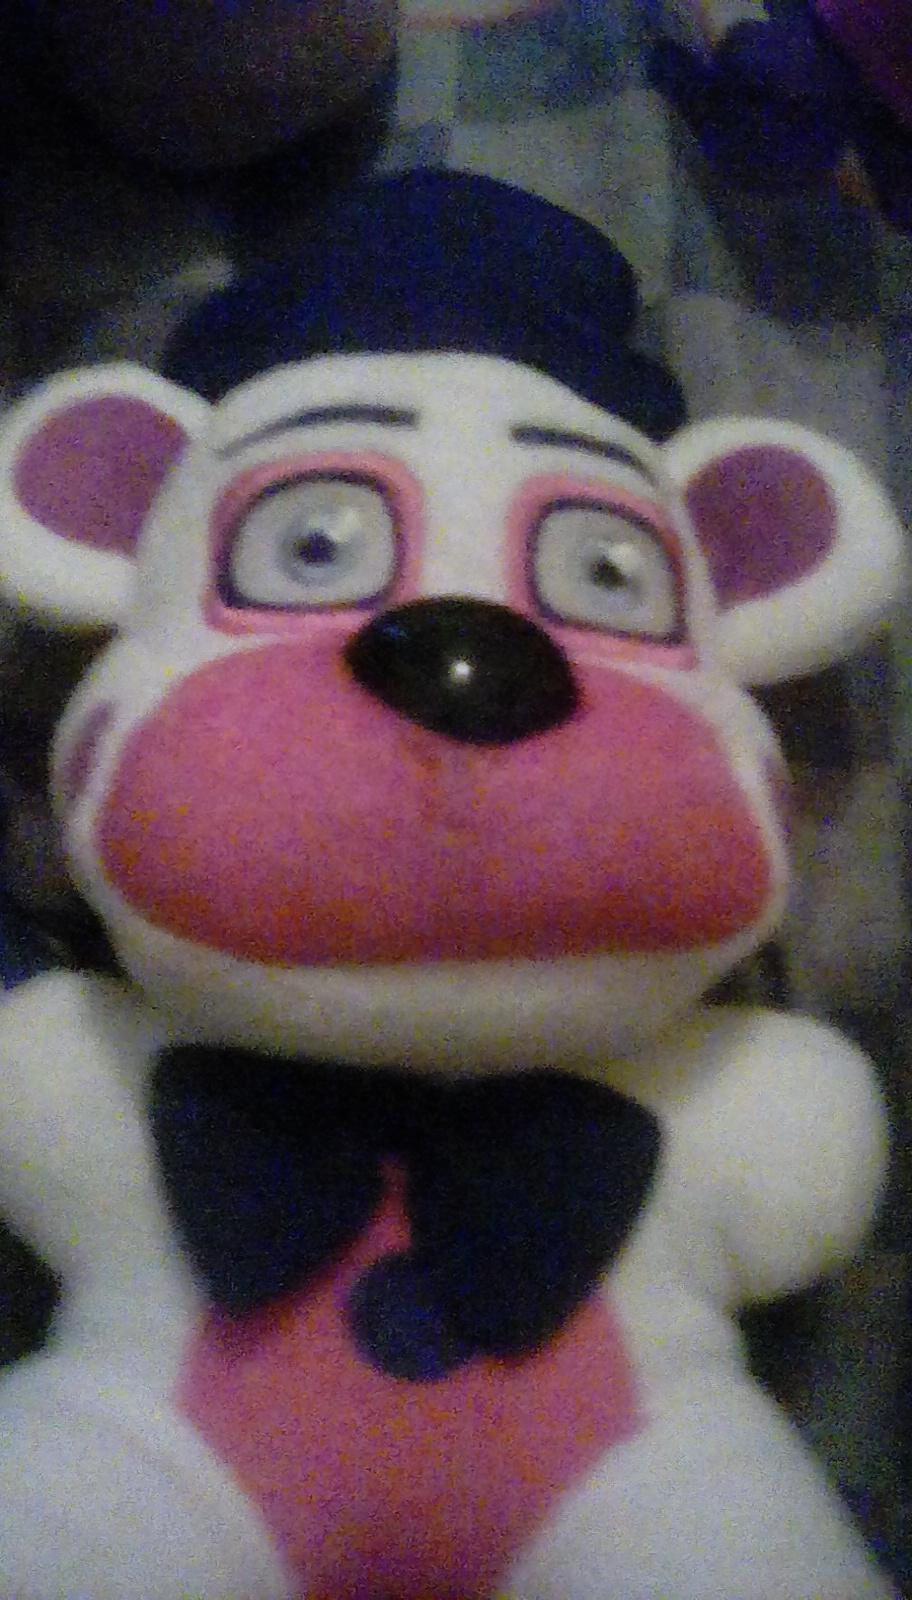 Funtime Freddy plush